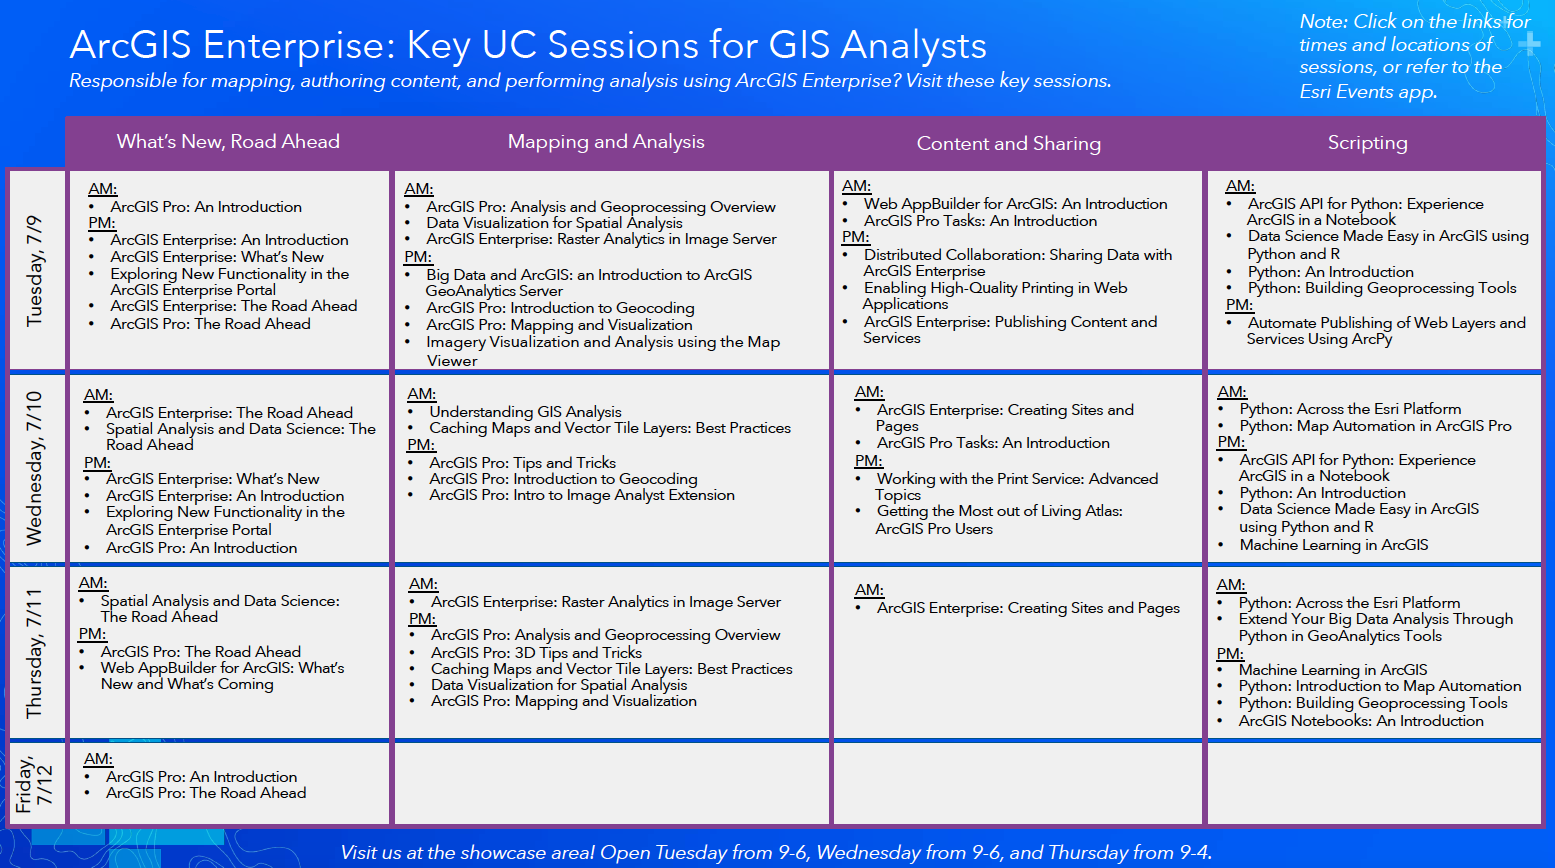 Come visit the ArcGIS Enterprise sessions at the 2019 Esri User Conference.